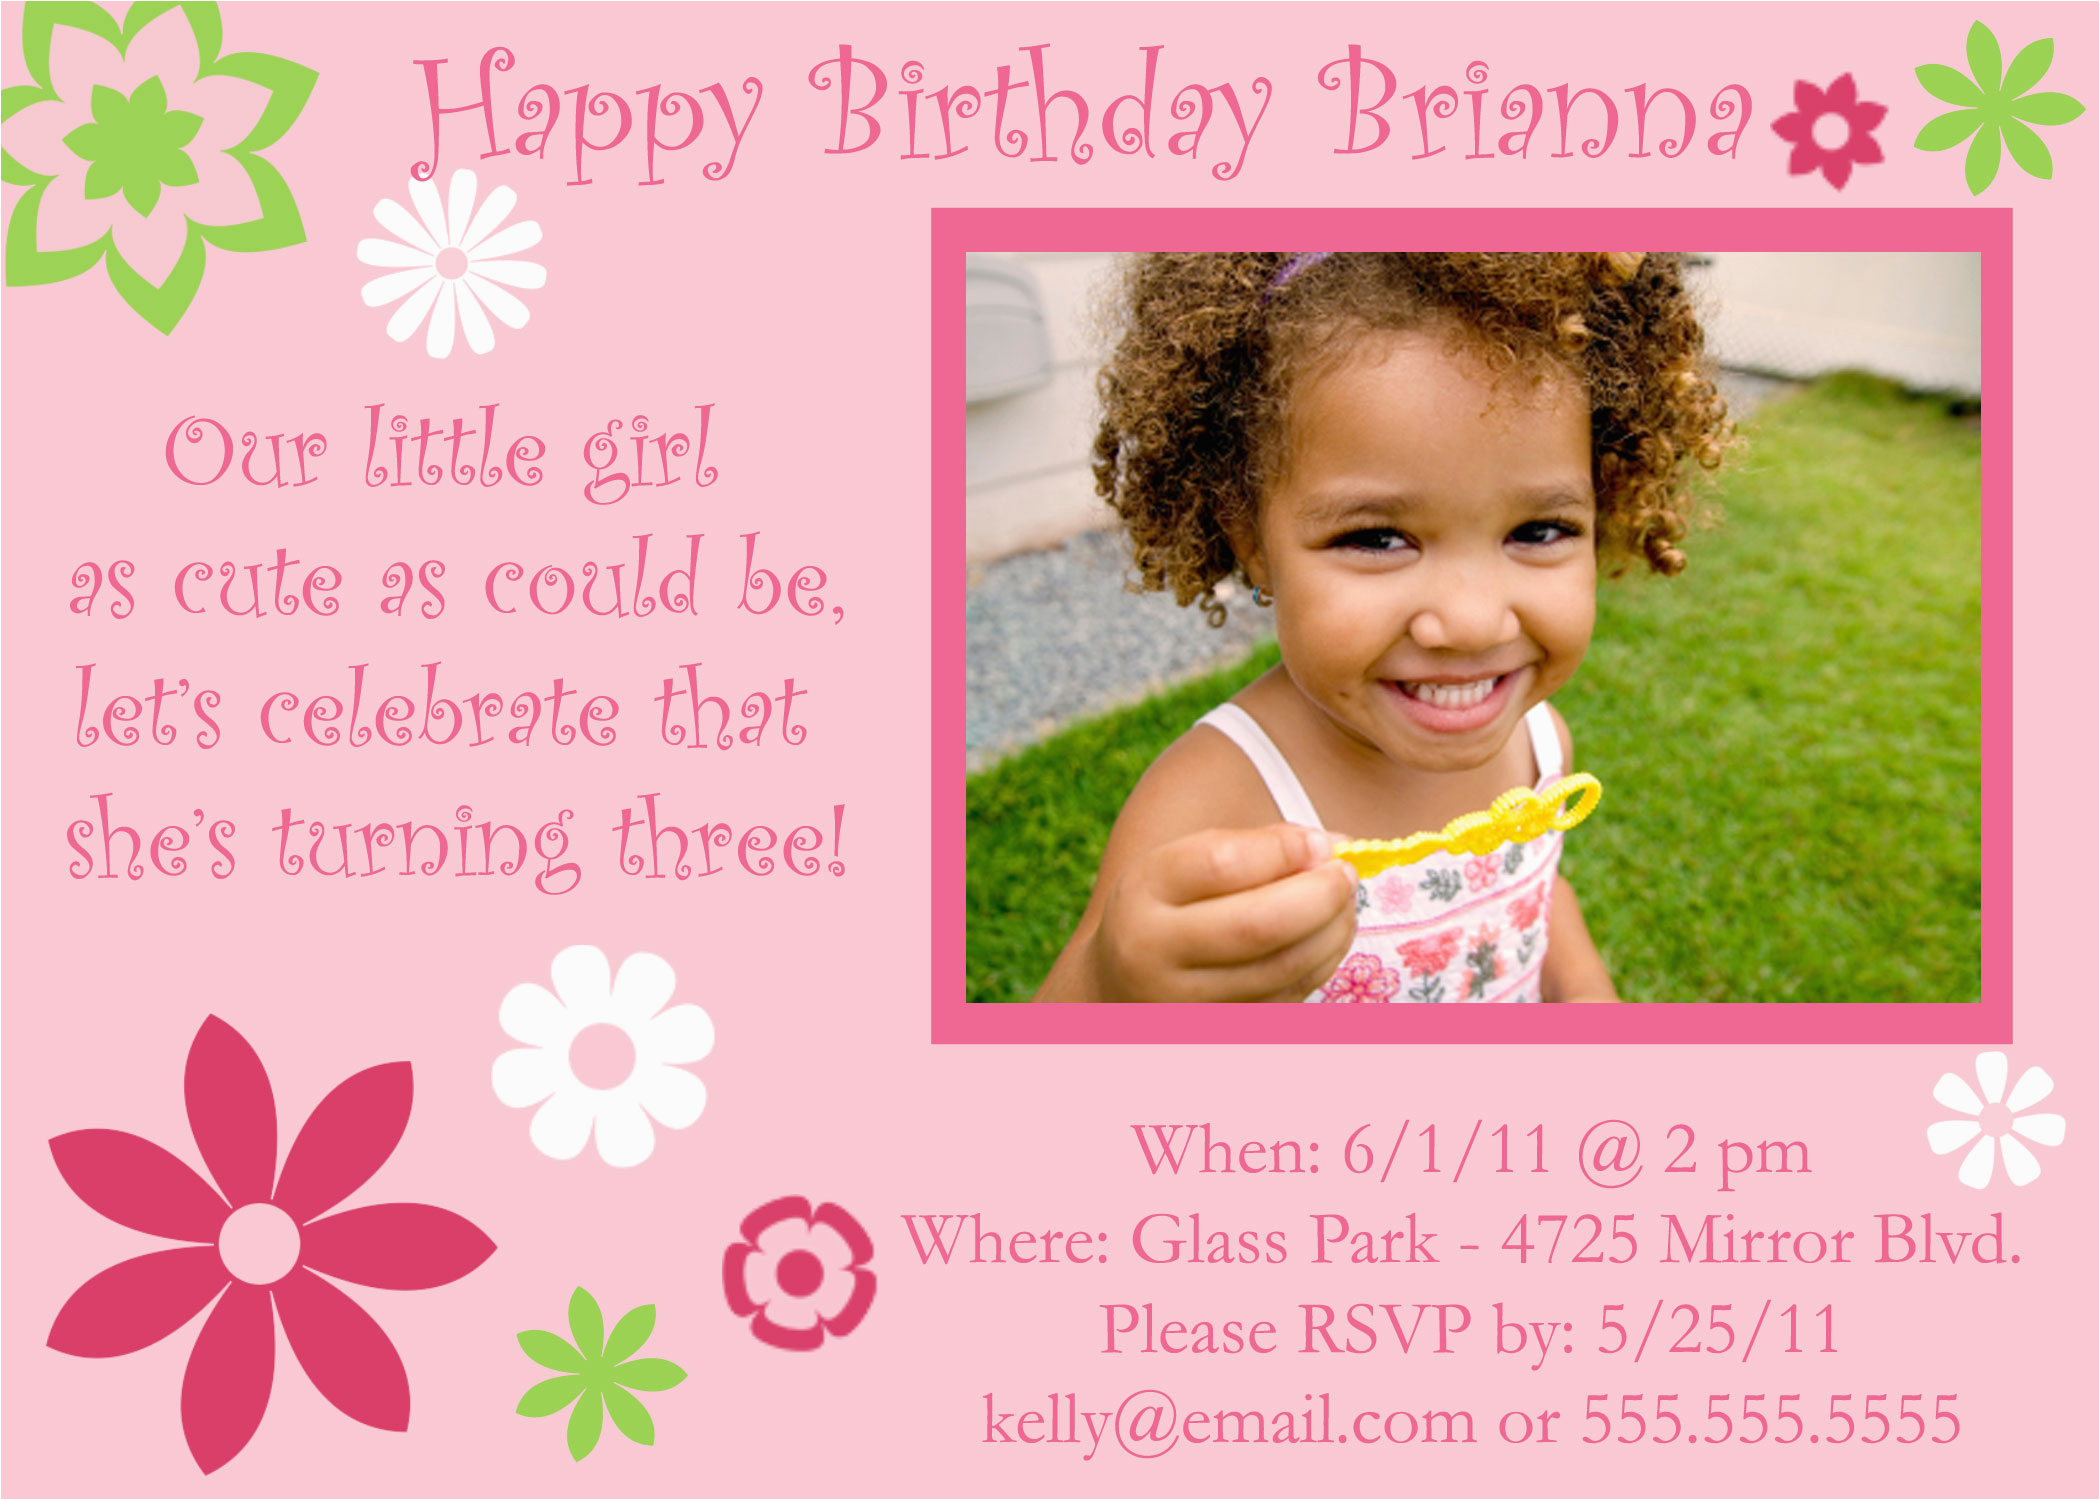 Birthday Party Invitation Wording For 3 Year Old Pink Flowers Element 120 Designs